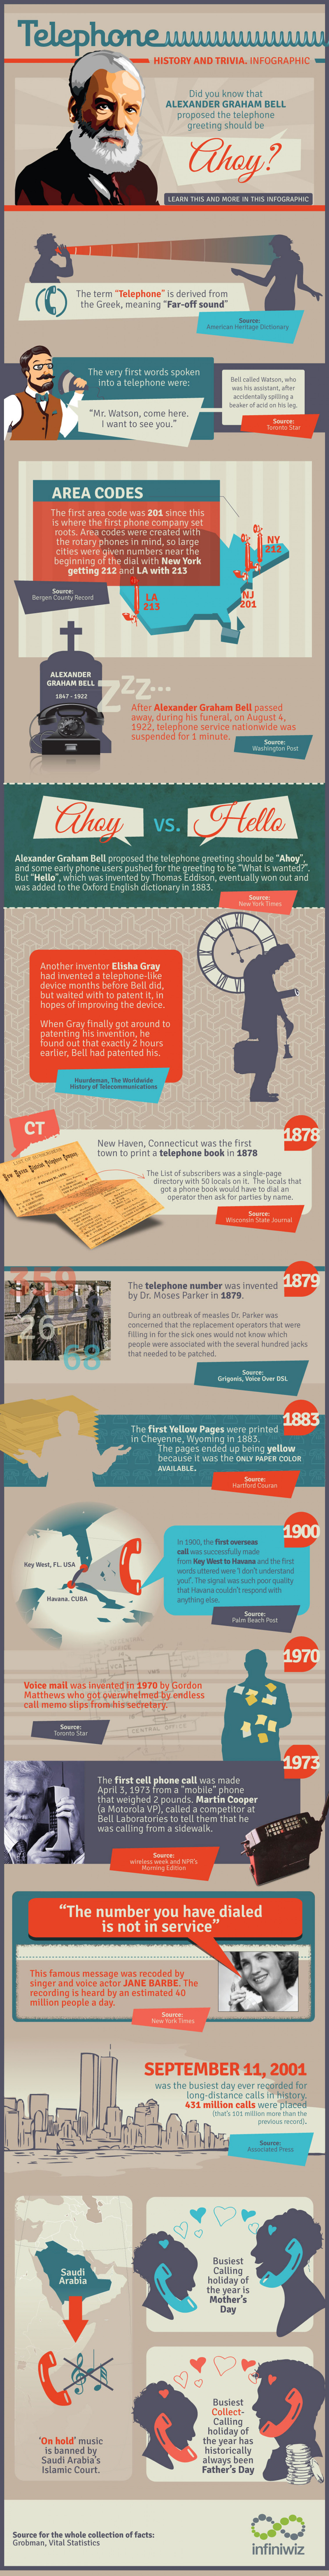 Telephone History and Trivia Infographic